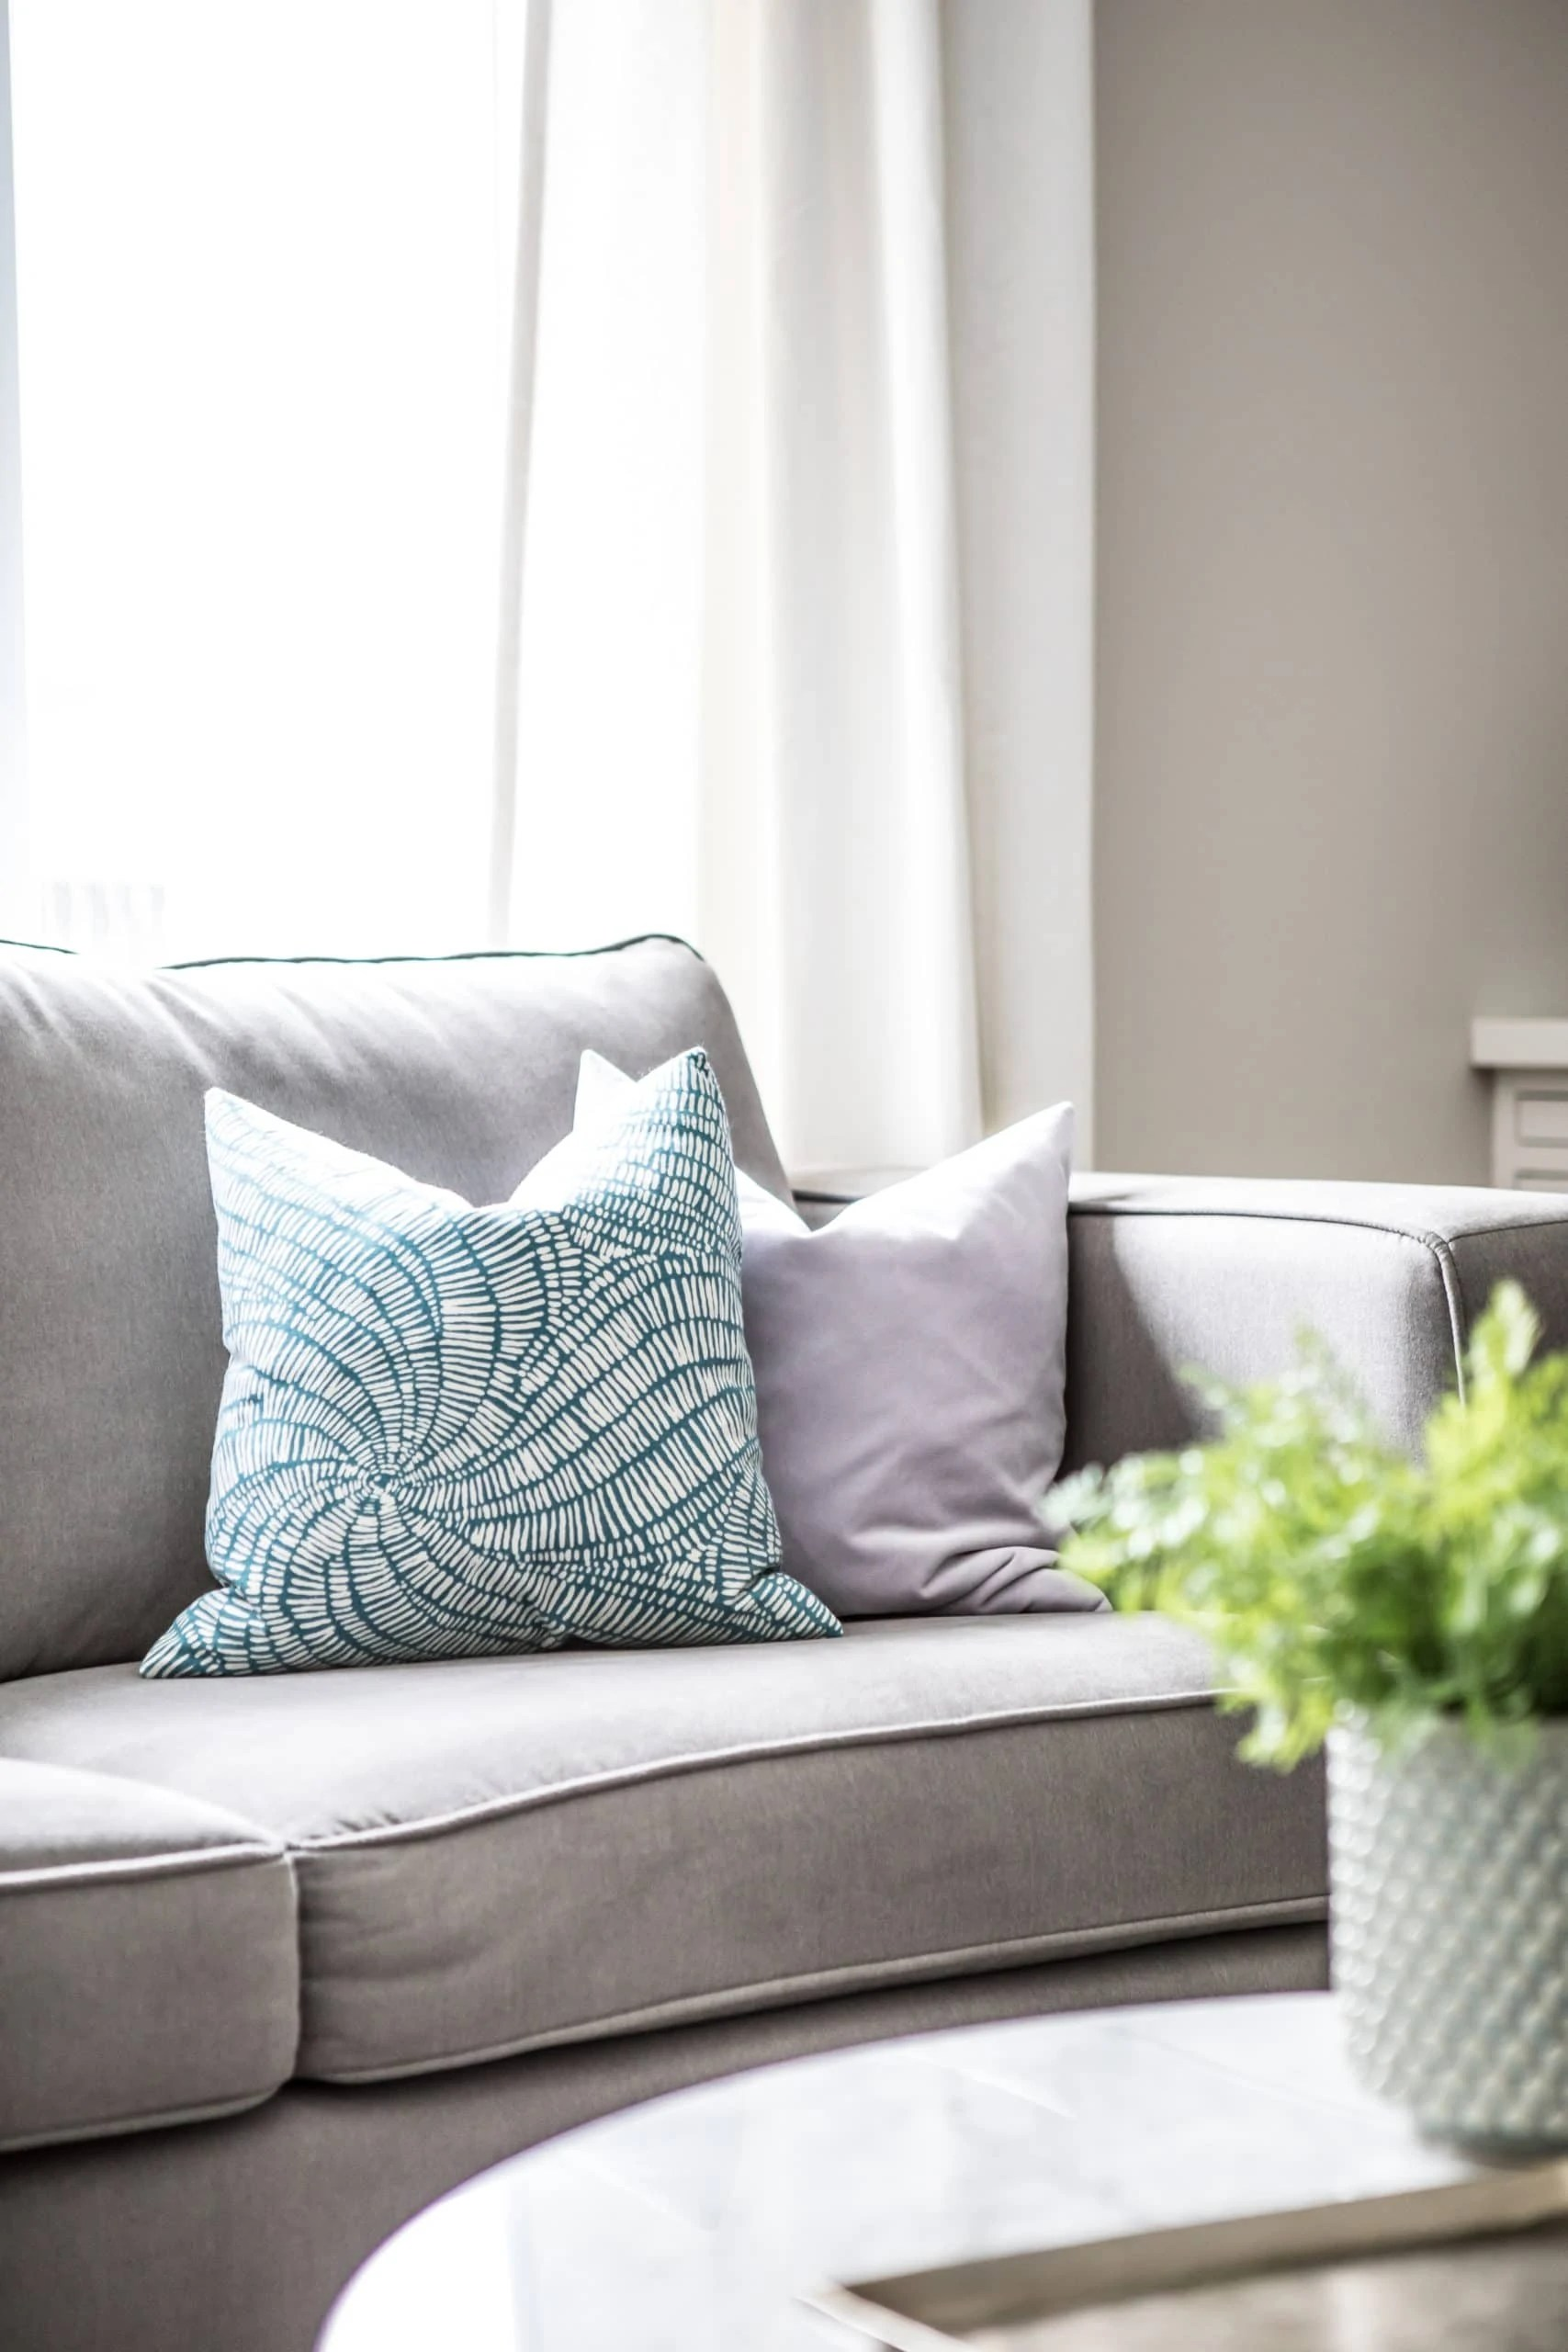 Pillows on a grey couch within a living room